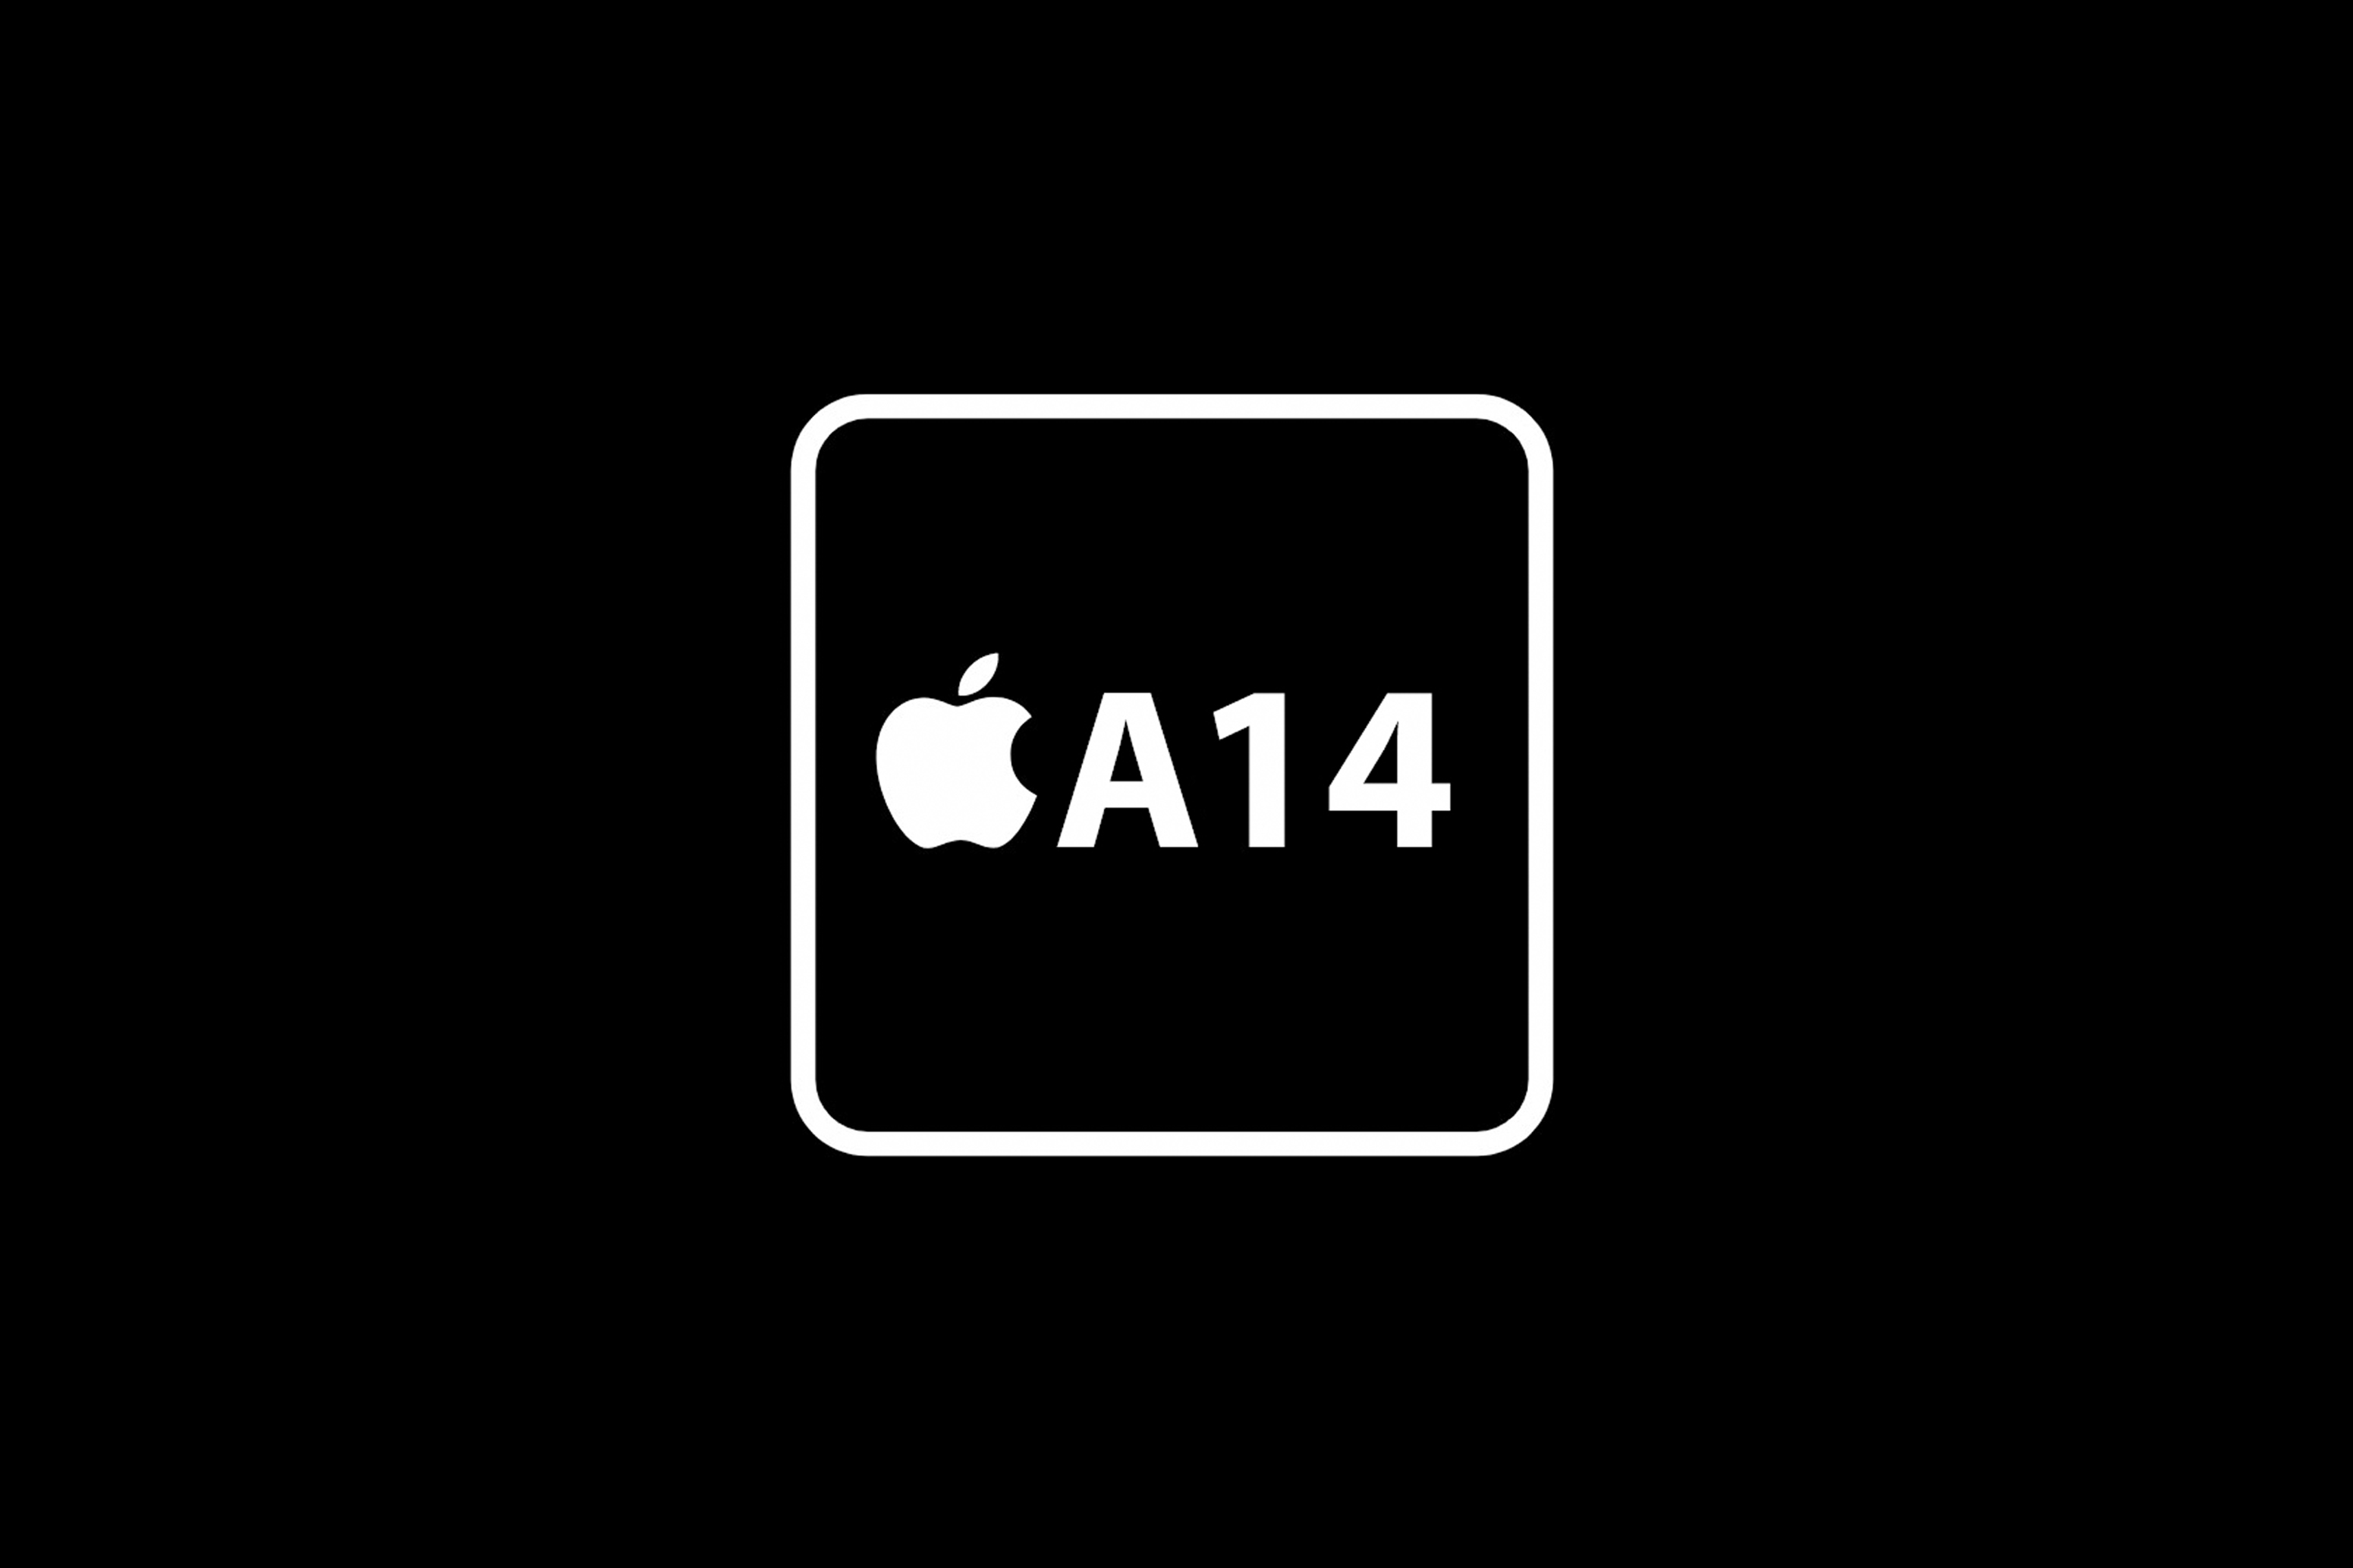 Apple A14 Bionic logosu